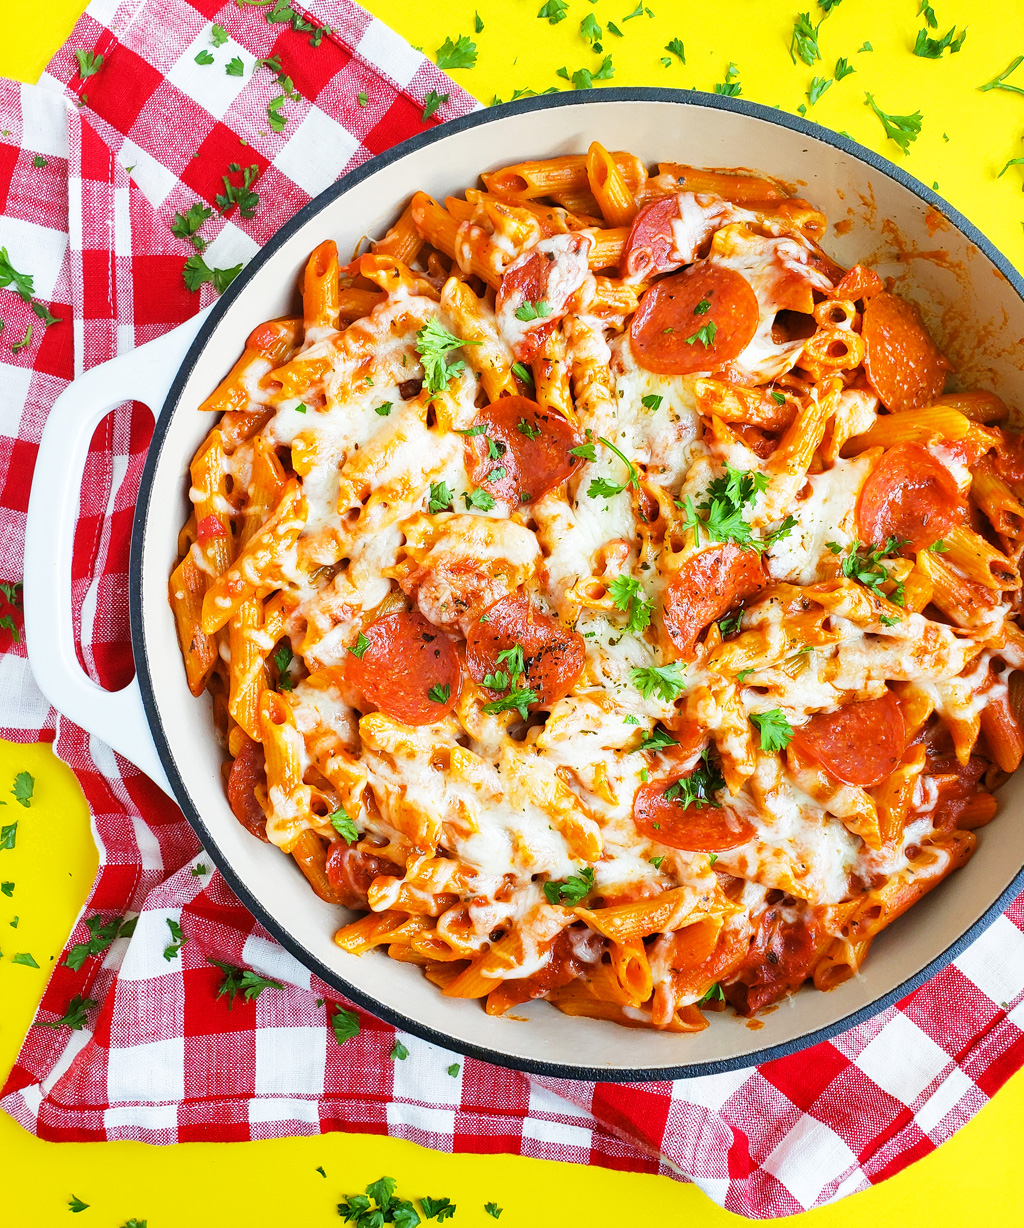 Everything you love about pepperoni pizza, in a one pot, kid-friendly pasta recipe! This Easy Cheesy One Pot Pepperoni Pizza Pasta is ready in just 30 minutes. #pizzapasta #30minuterecipe littleeatsandthings.com